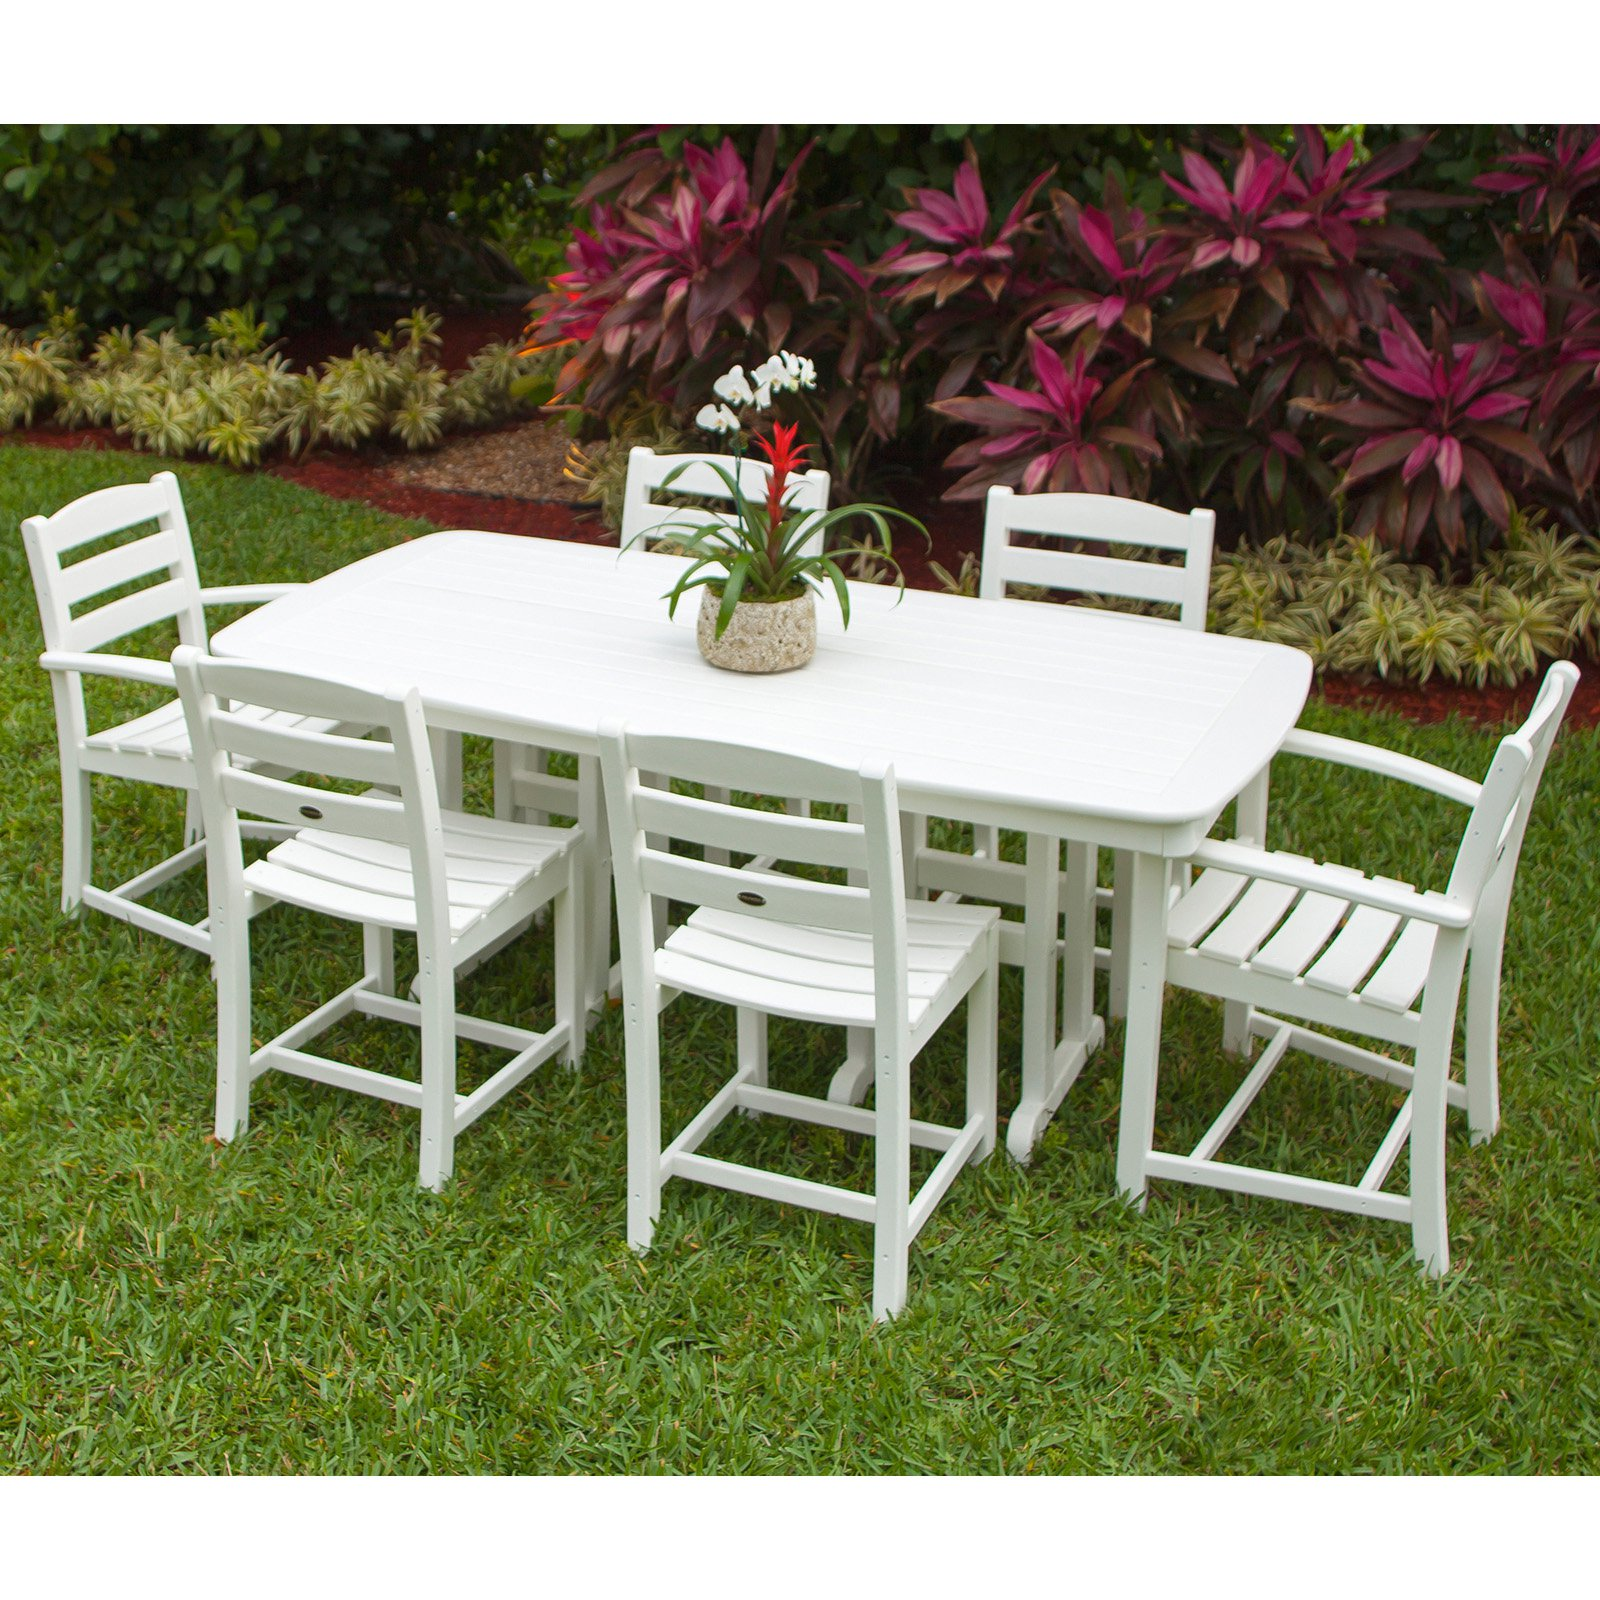 POLYWOOD® La Casa Cafe Dining Set - Seats 6